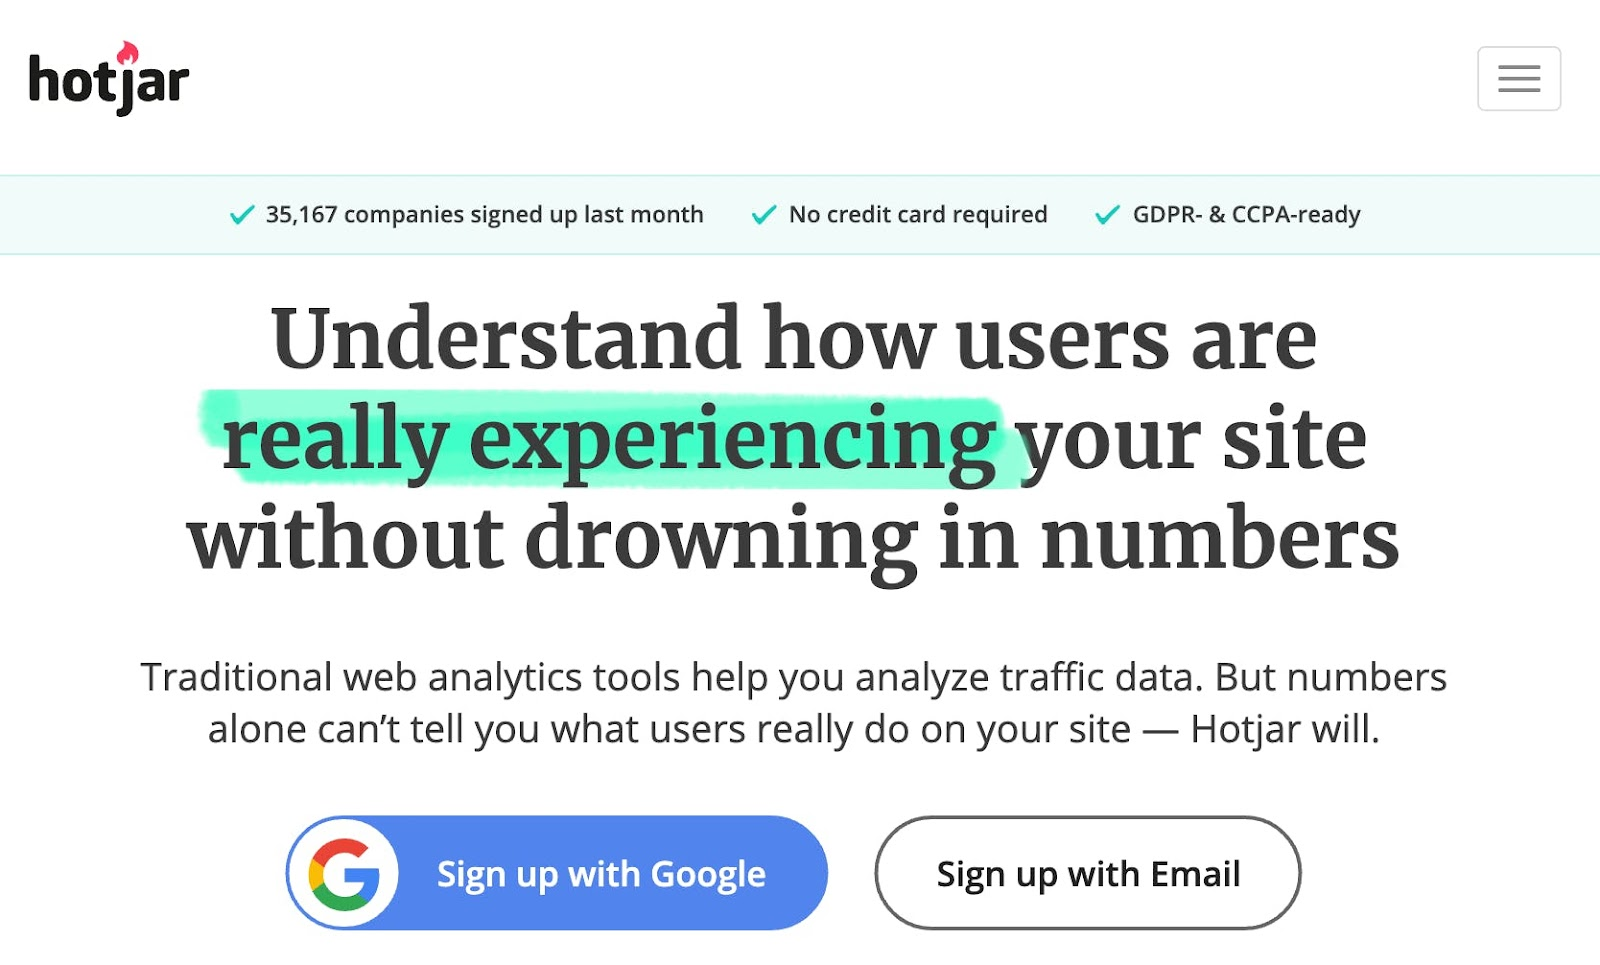 Hotjar's headline is an example of product narrative design